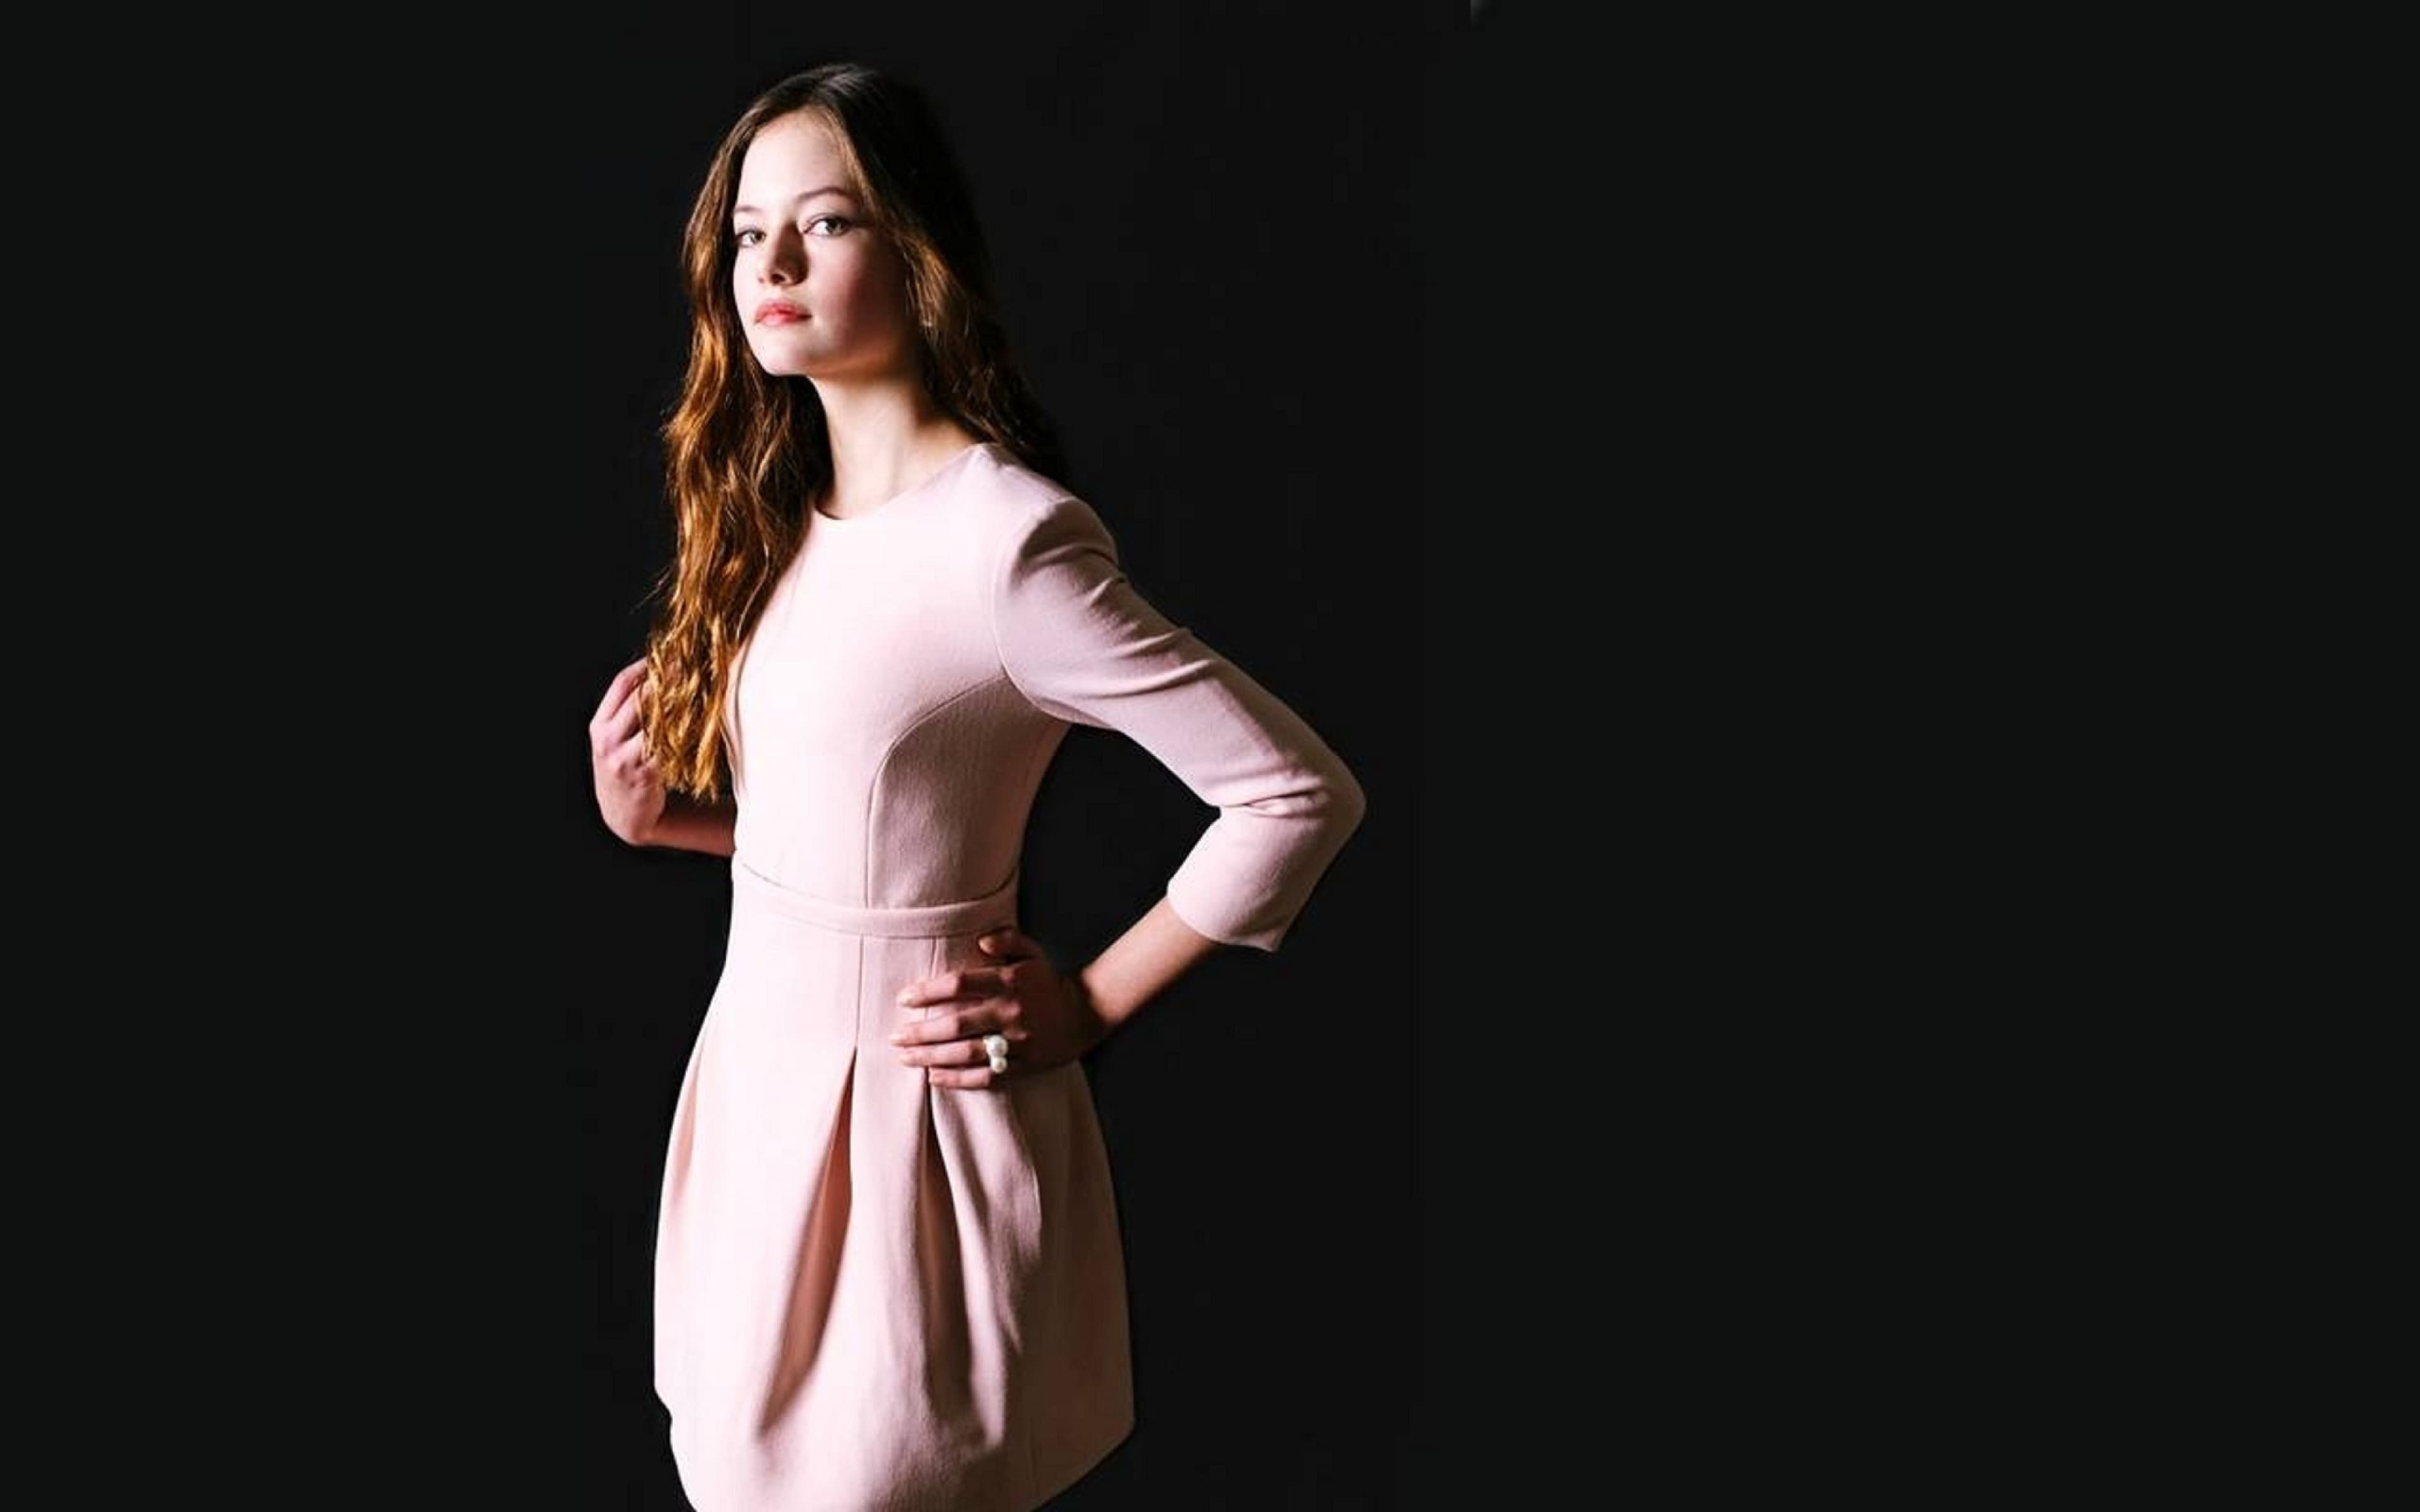 Hd Car Games Wallpapers 25 Mackenzie Foy Wallpapers Hd